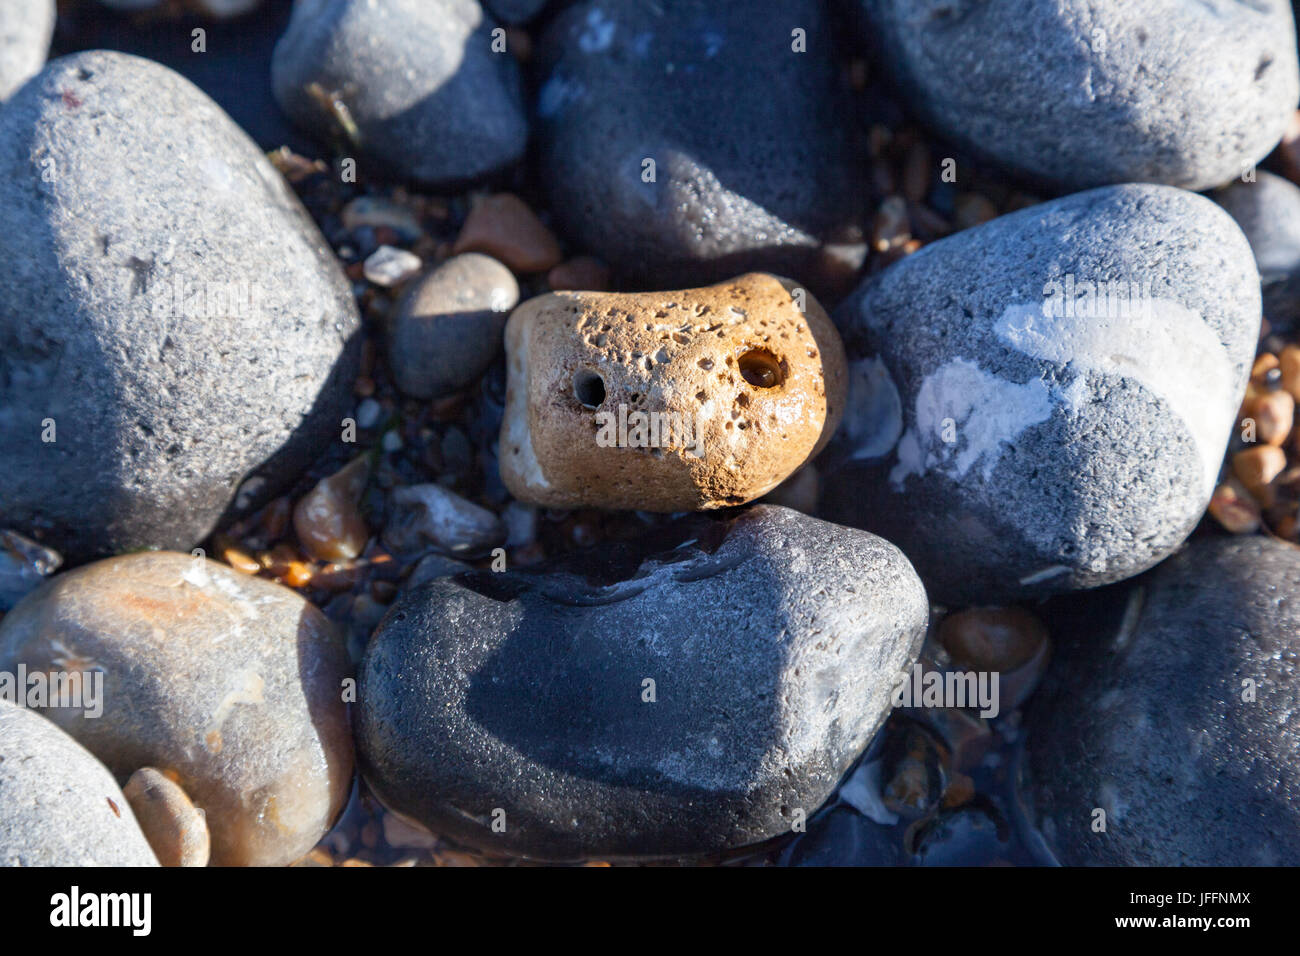 A cute 'pet rock' that looks up to you - Stock Image